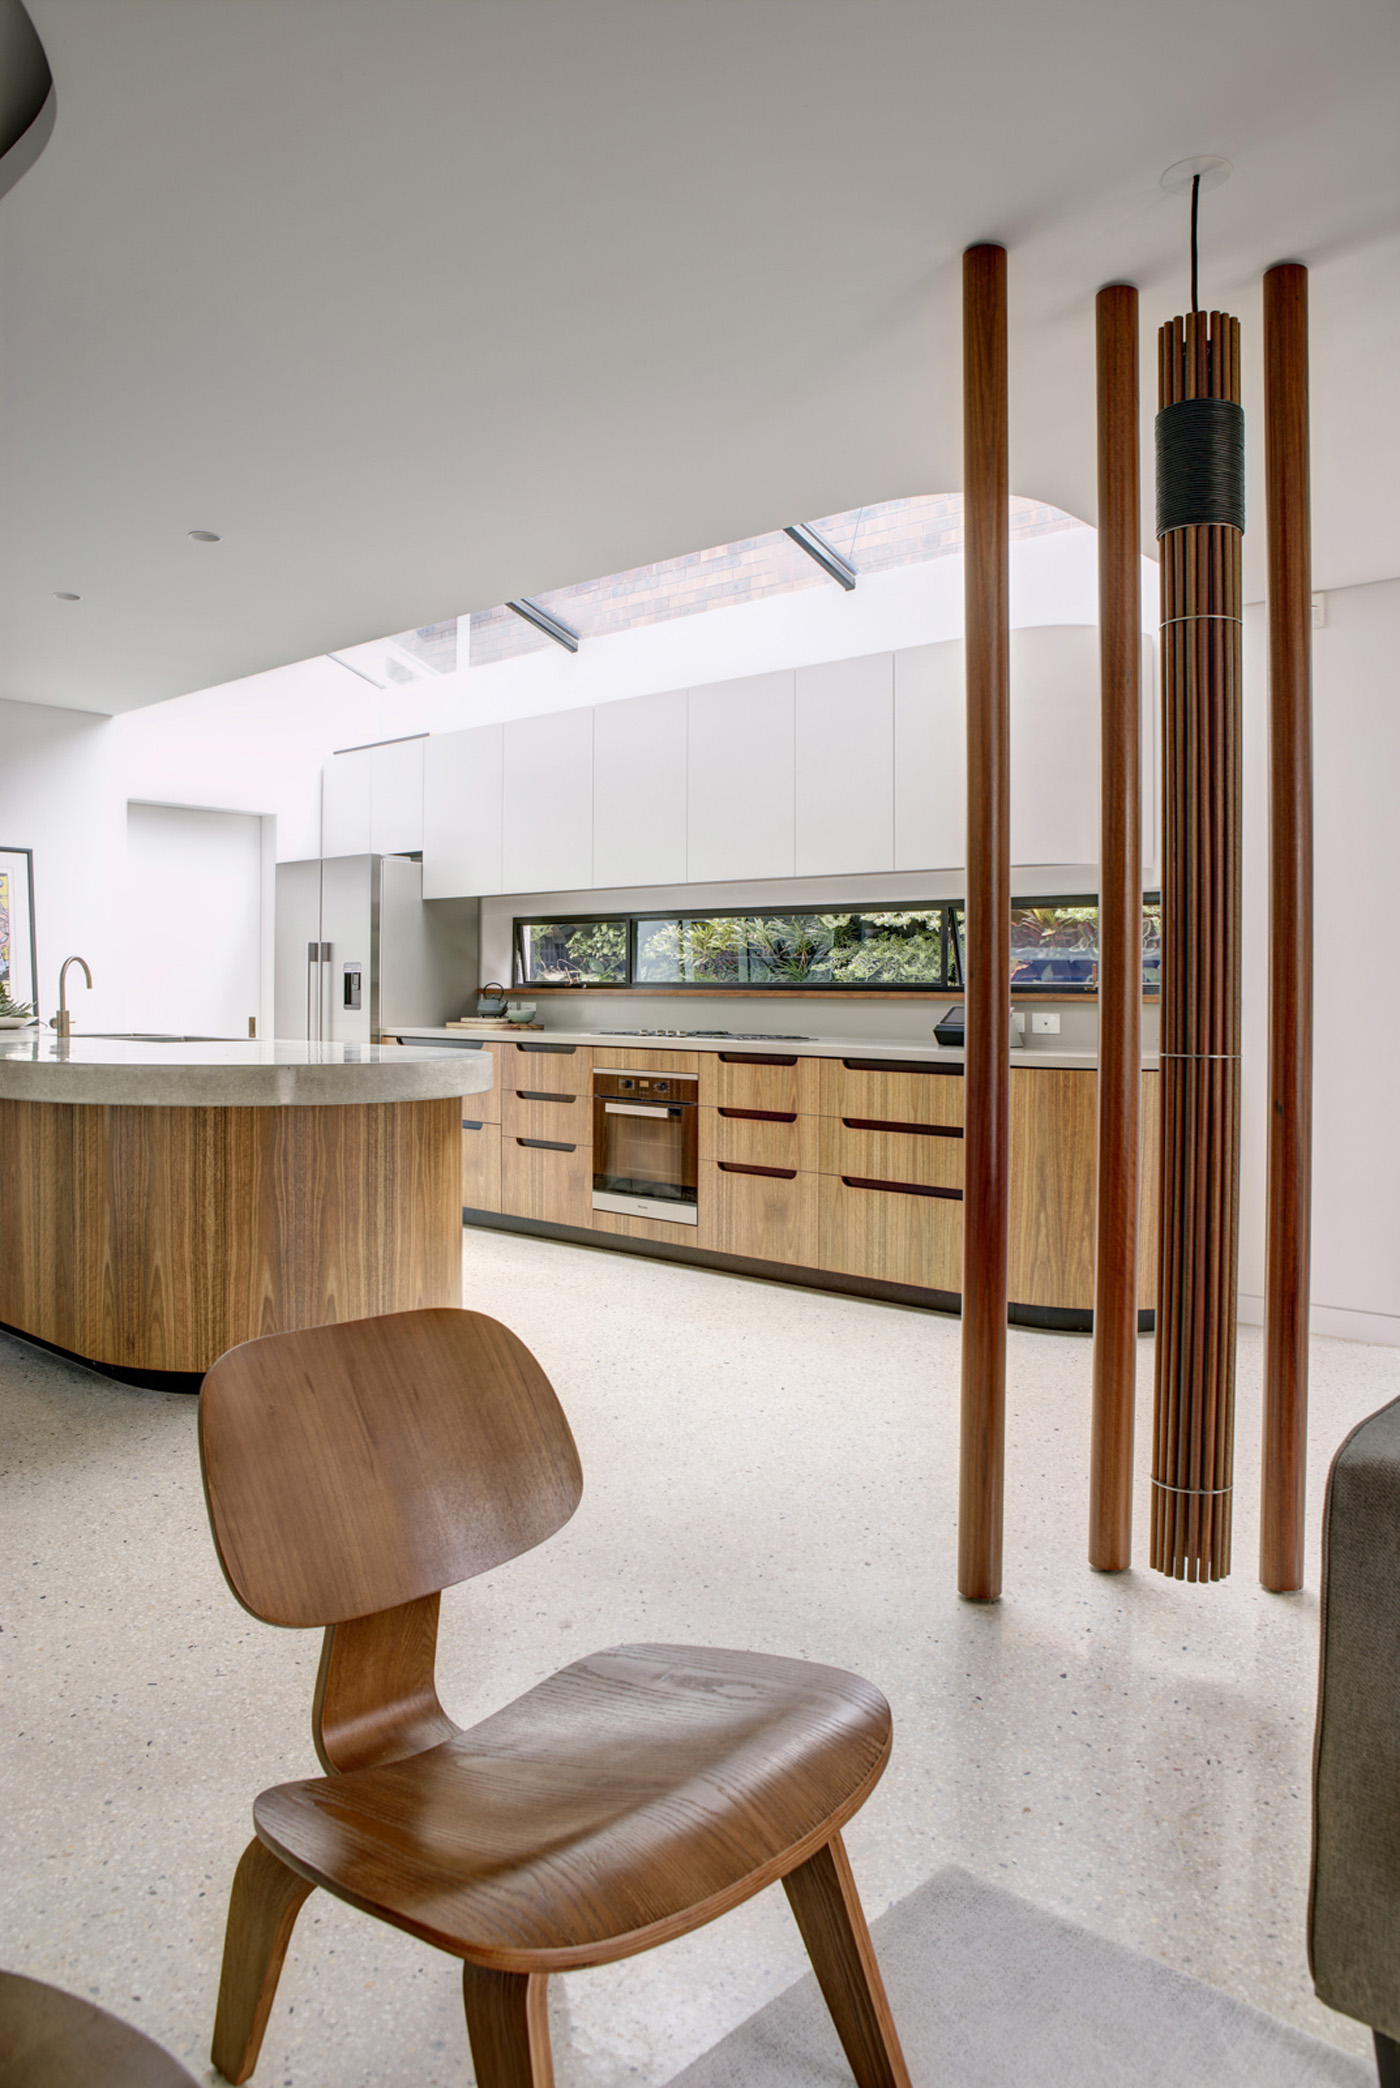 Dover Heights Pendants by award winning Sydney firm Sam Crawford Architects. View to light-filled kitchen with round posts and custom made pendant light.